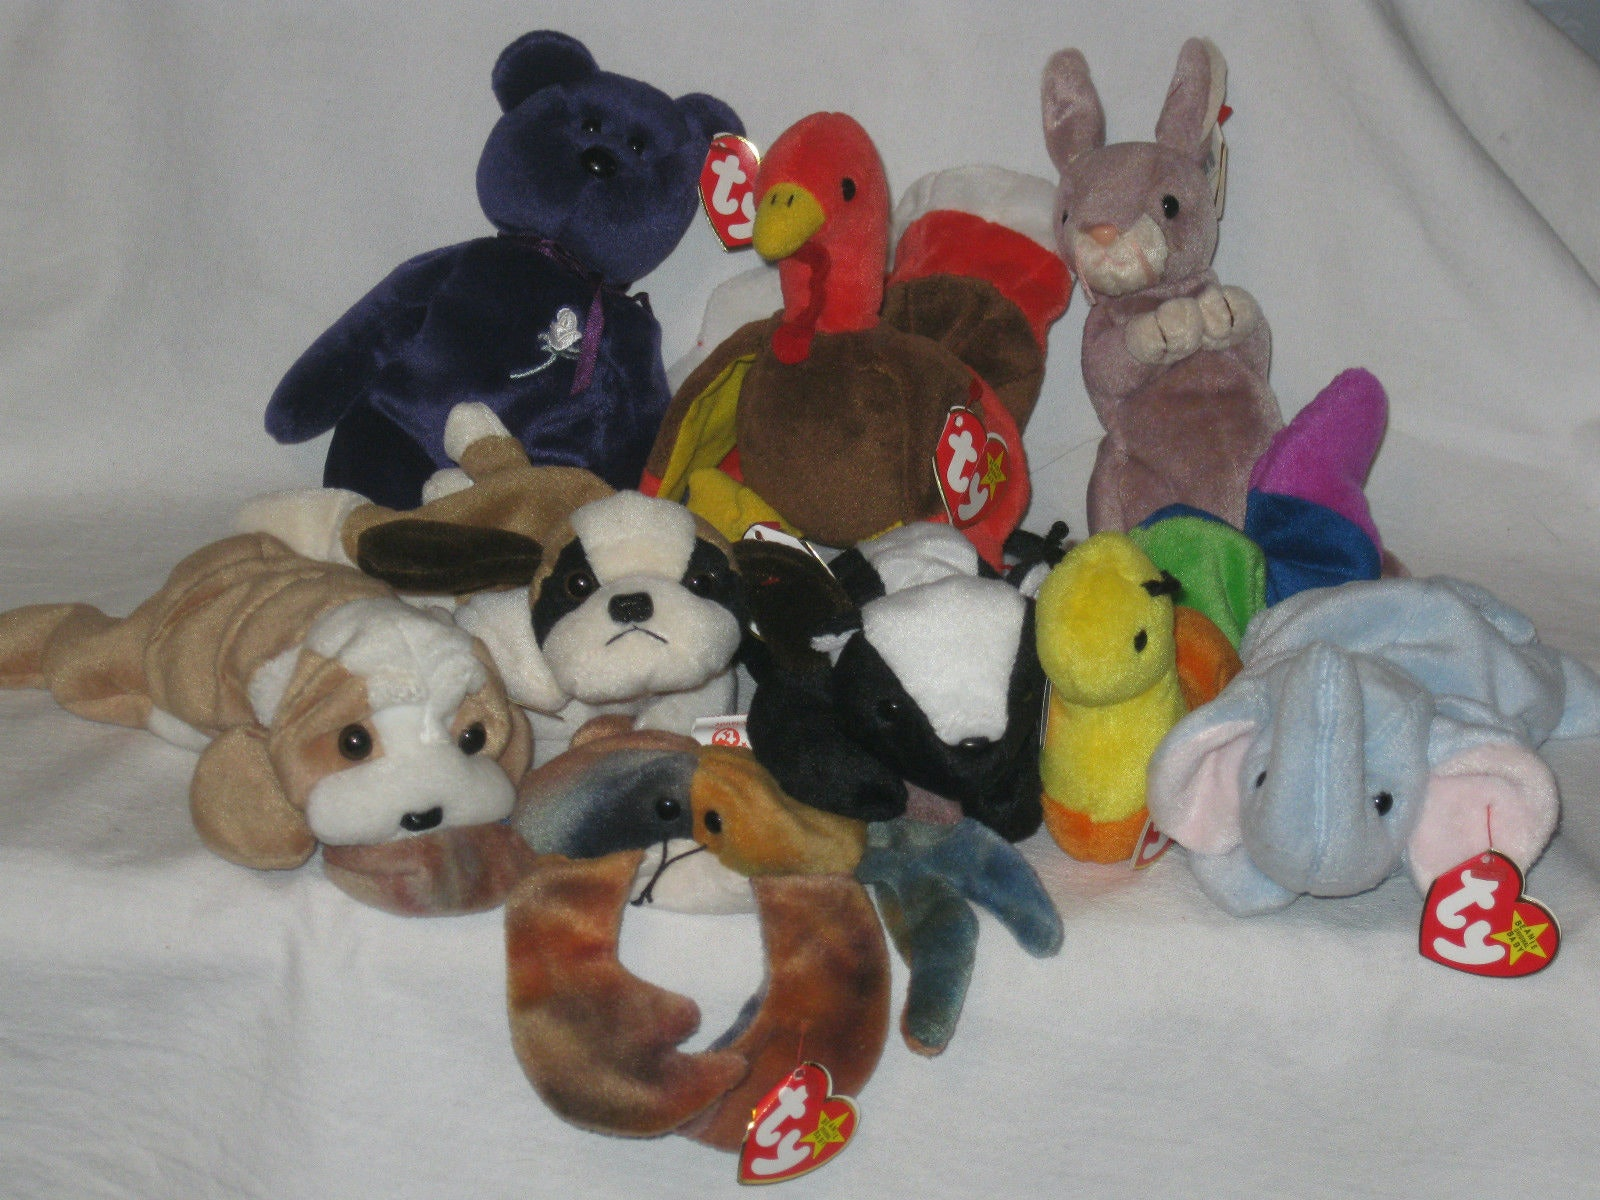 The Most Valuable Beanie Babies Could Be Hiding in Your Closet fc36ecd73a8